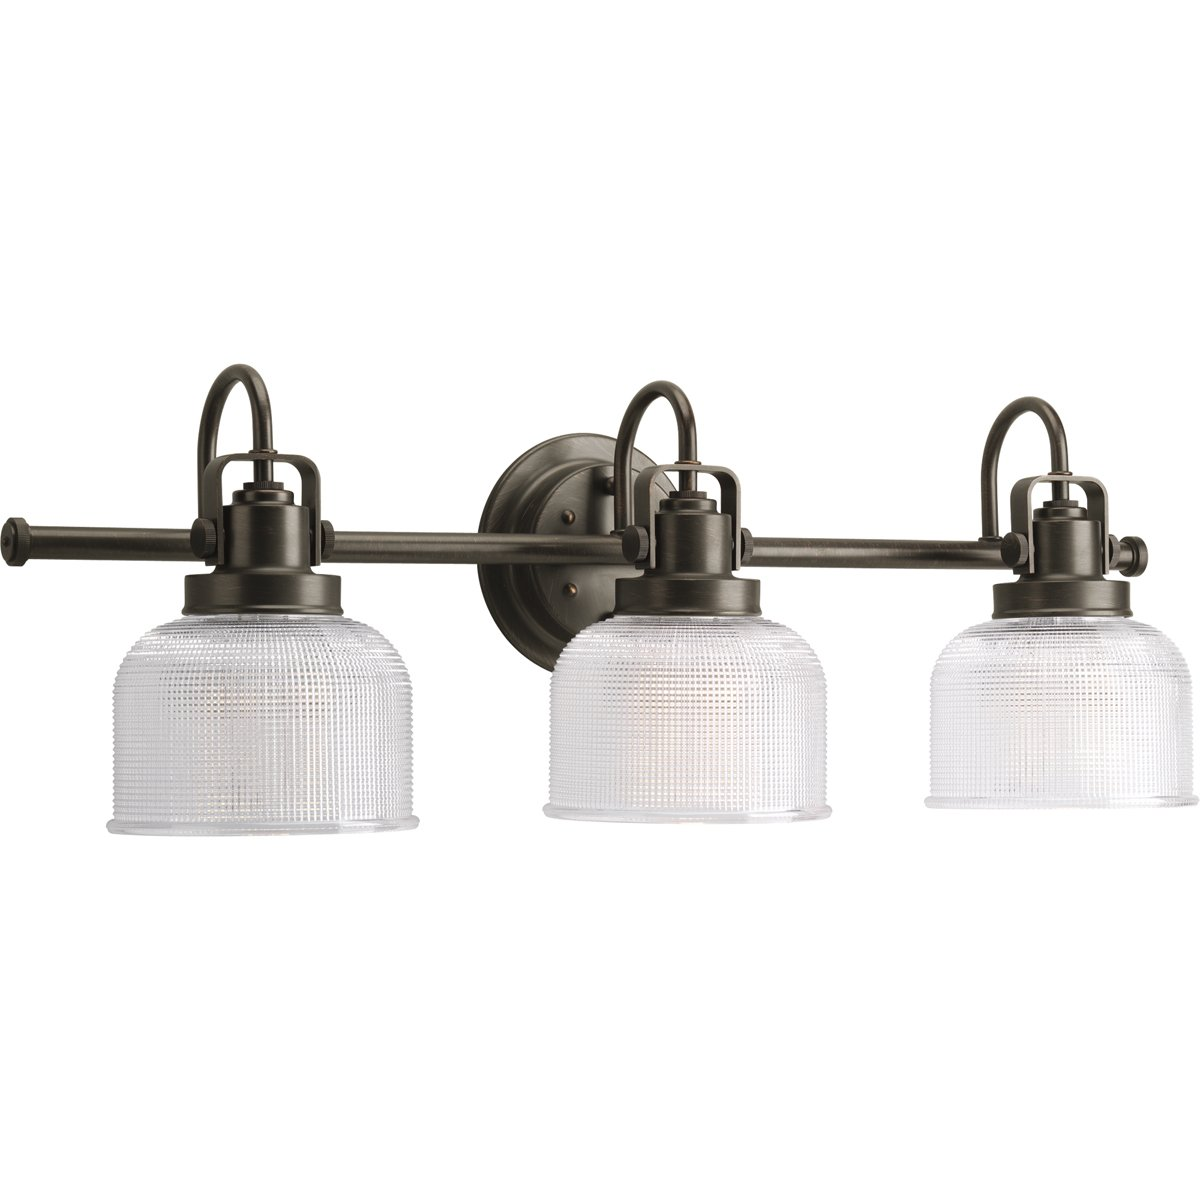 Progress Lighting P2992 81 Archie Three Light Bath Vanity, Antique Nickel  Finish   Vanity Lighting Fixtures   Amazon.com